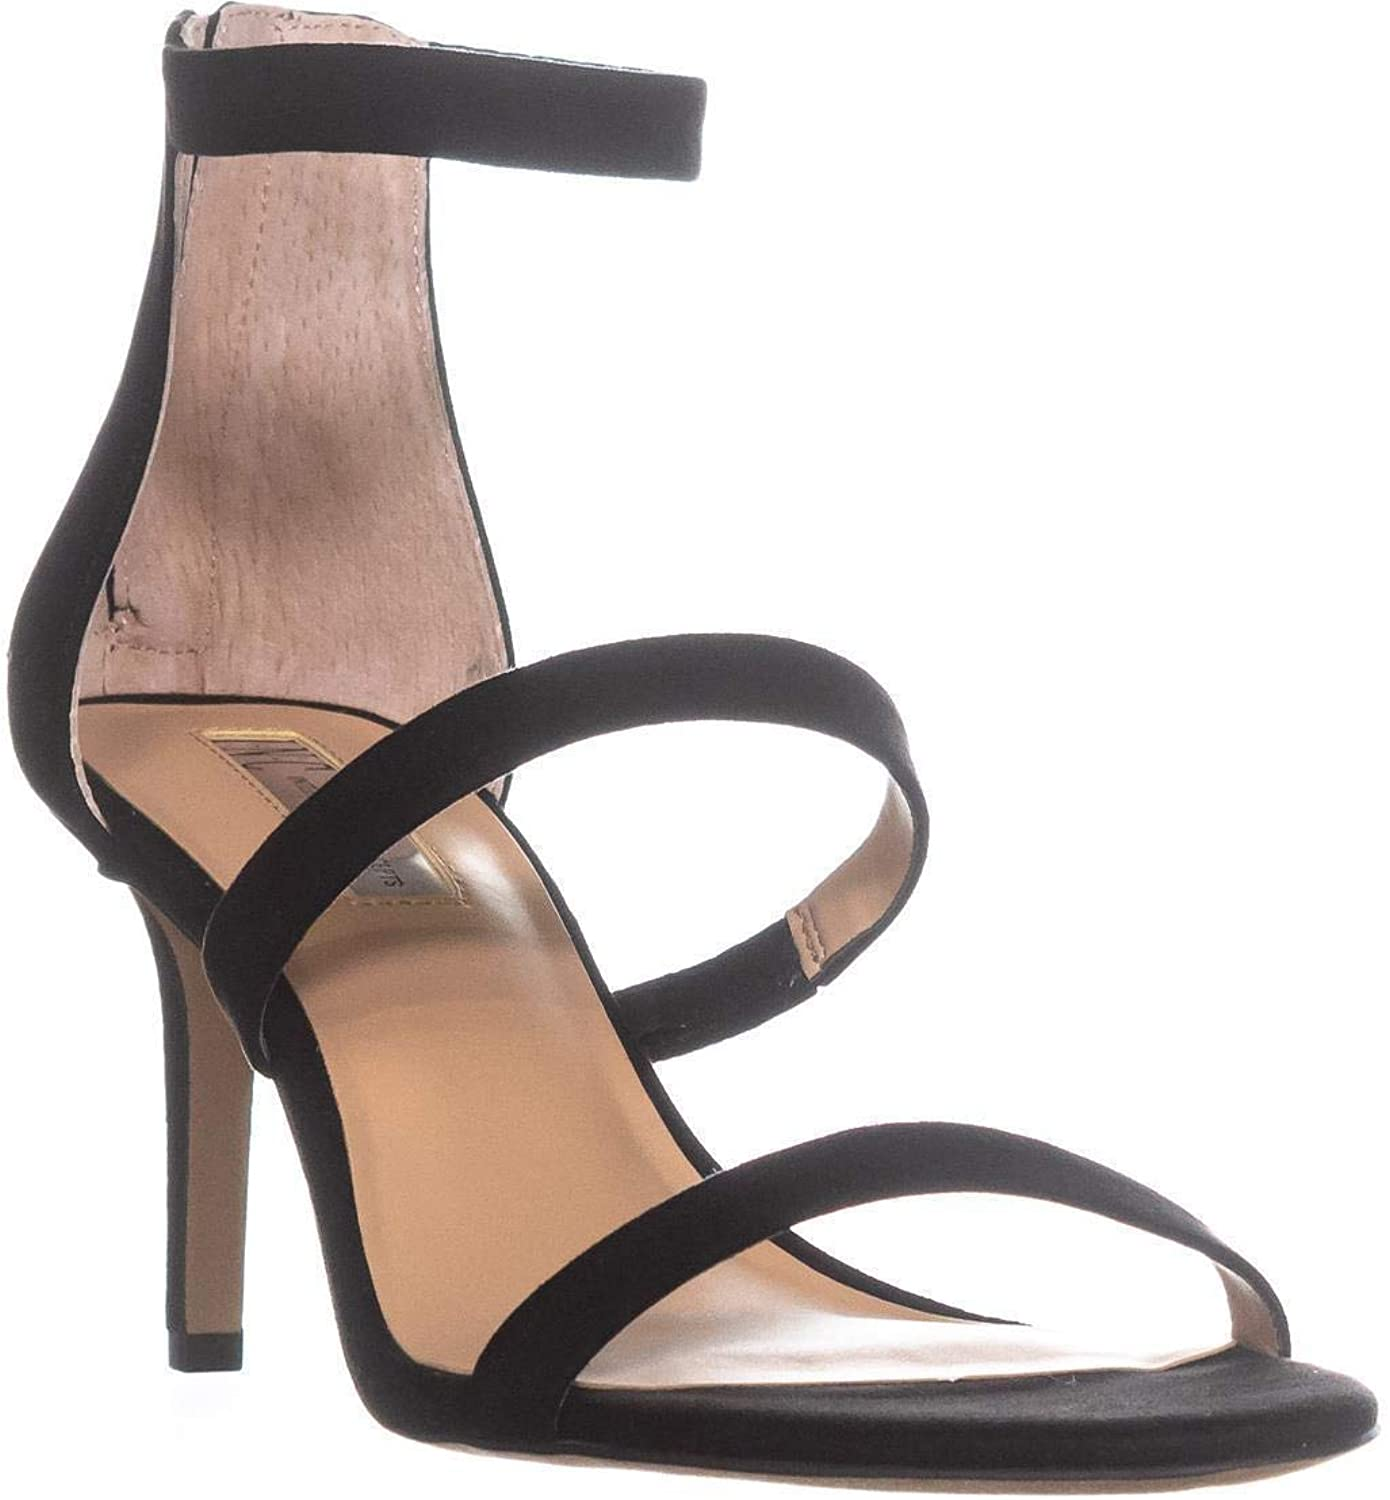 INC International Concepts Womens Lavonn Open Toe Special Occasion Ankle Stra.